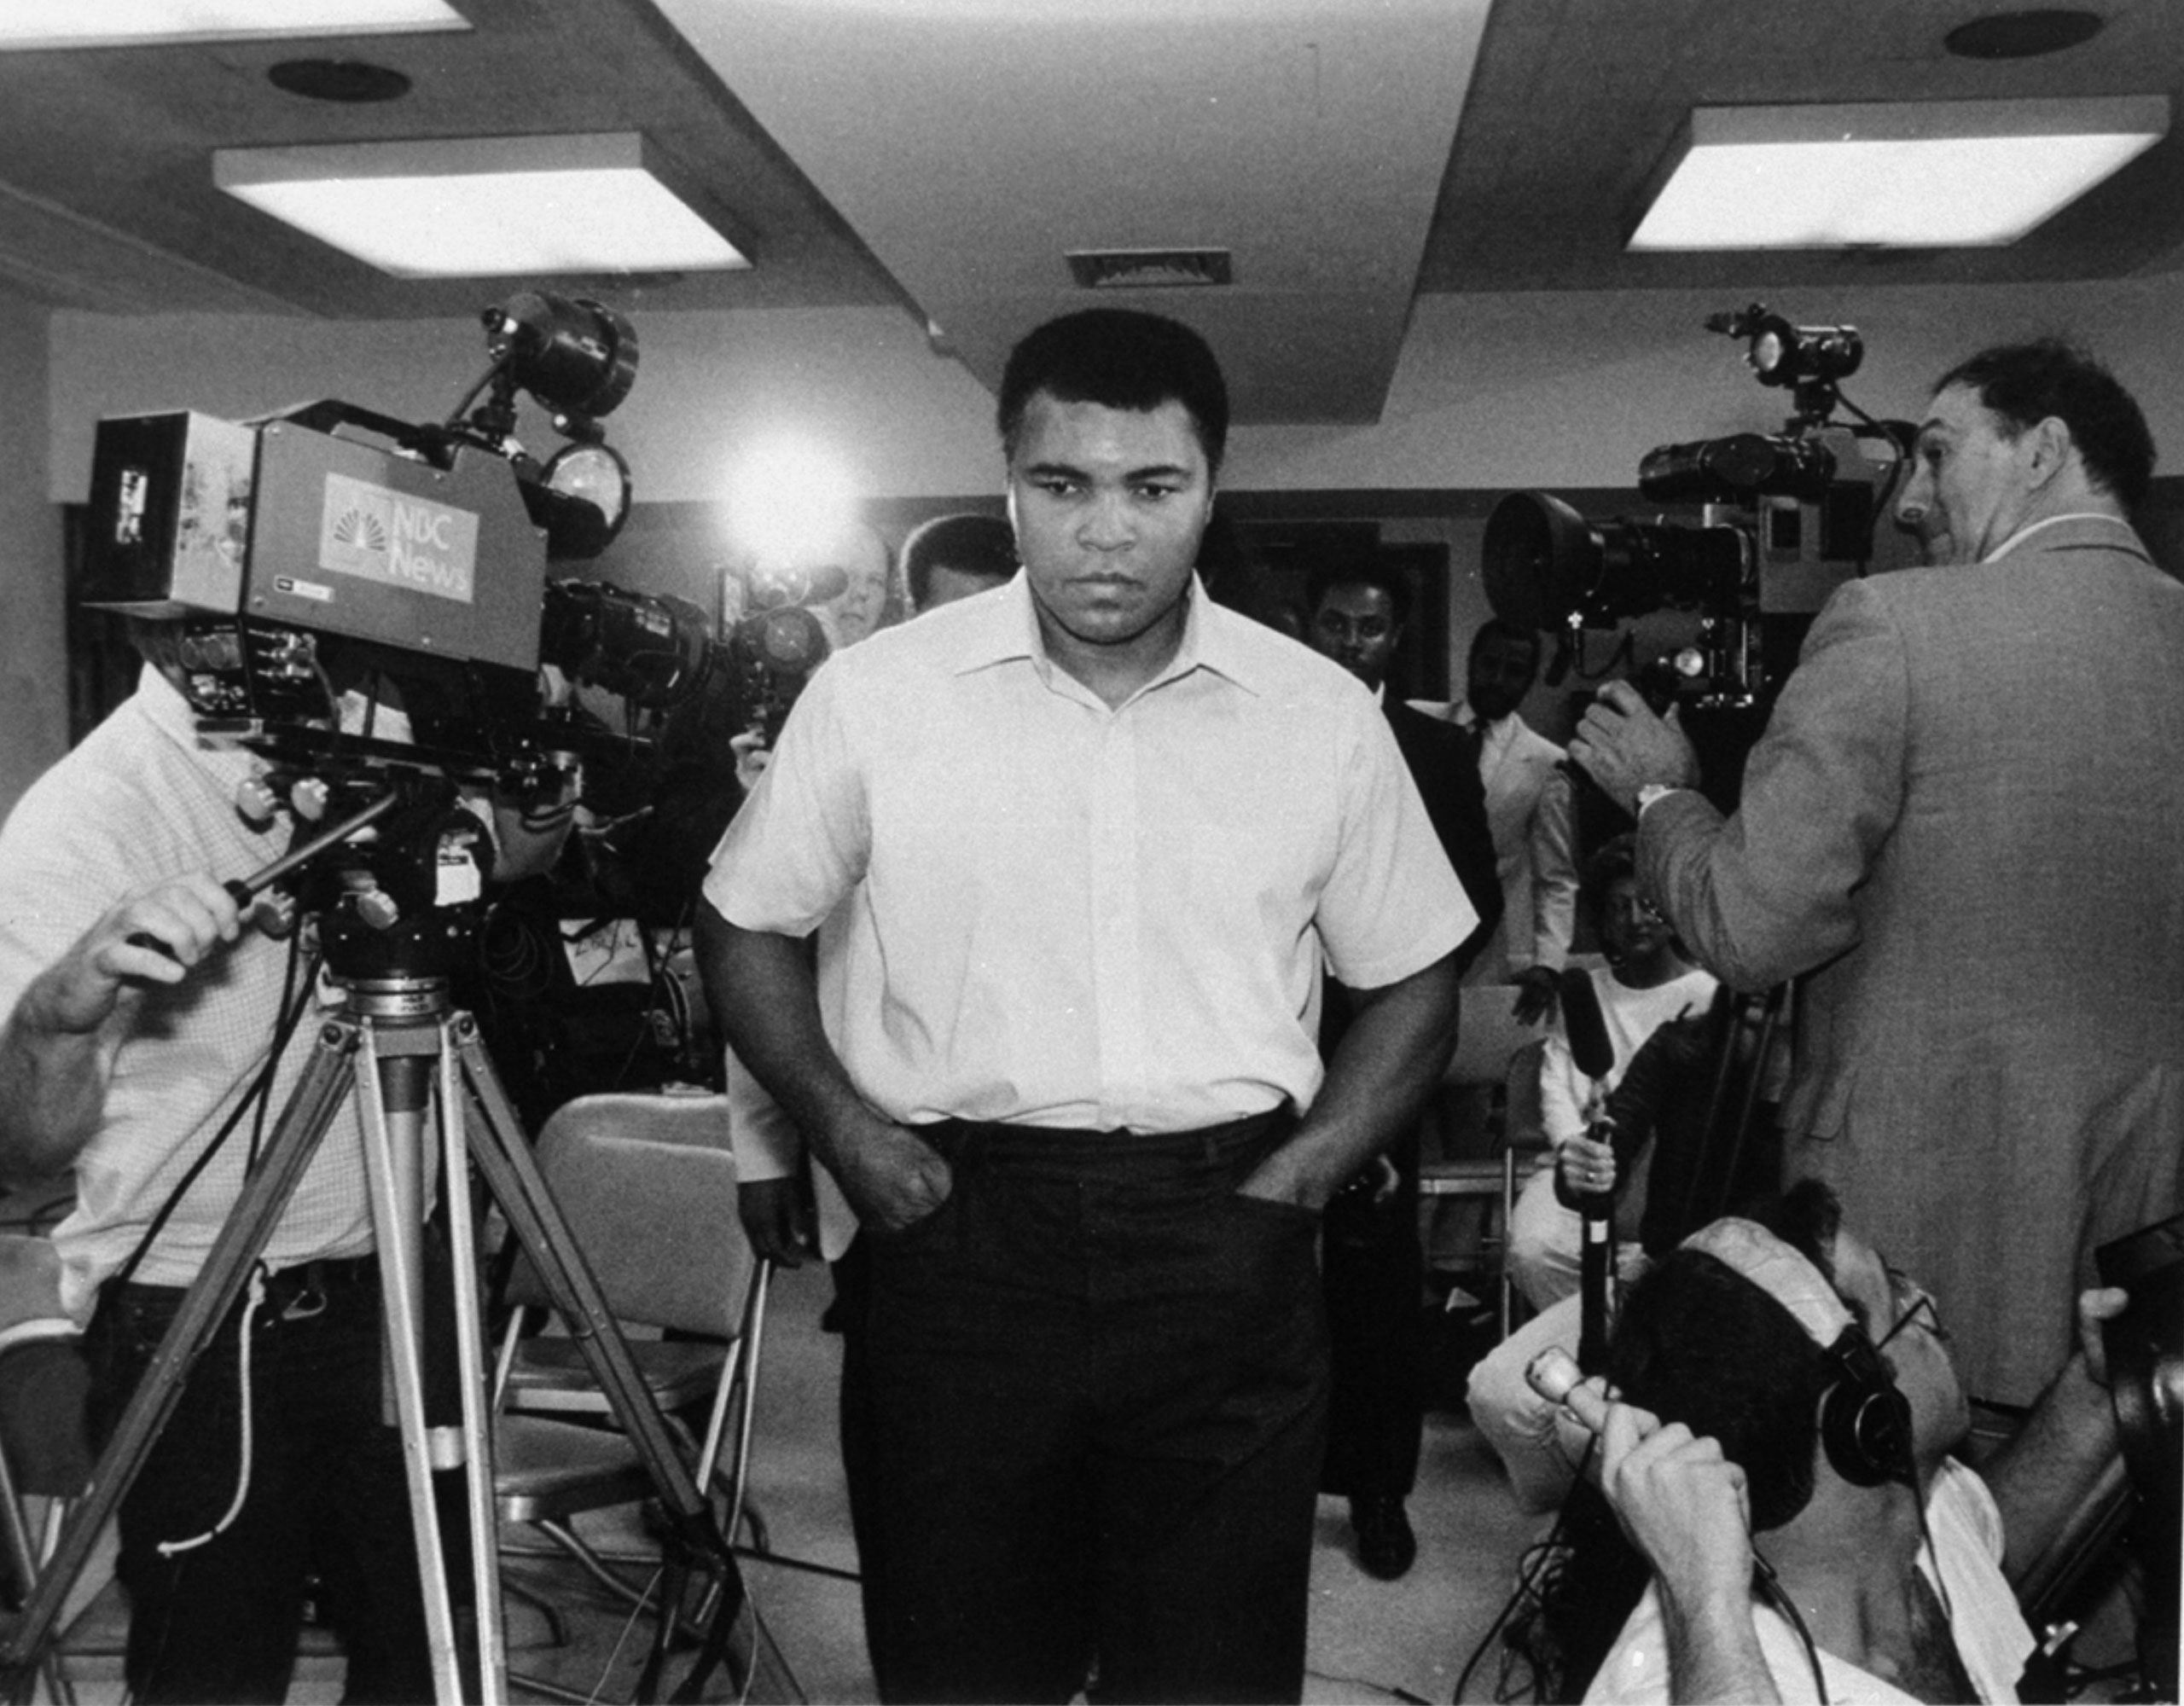 Ali was diagnosed with Parkinson's disease in 1984. He is pictured here at a hospital in New York City on Sept. 21, 1984, following four days of tests.  Ali said,  I'm always tired,  following his diagnosis.